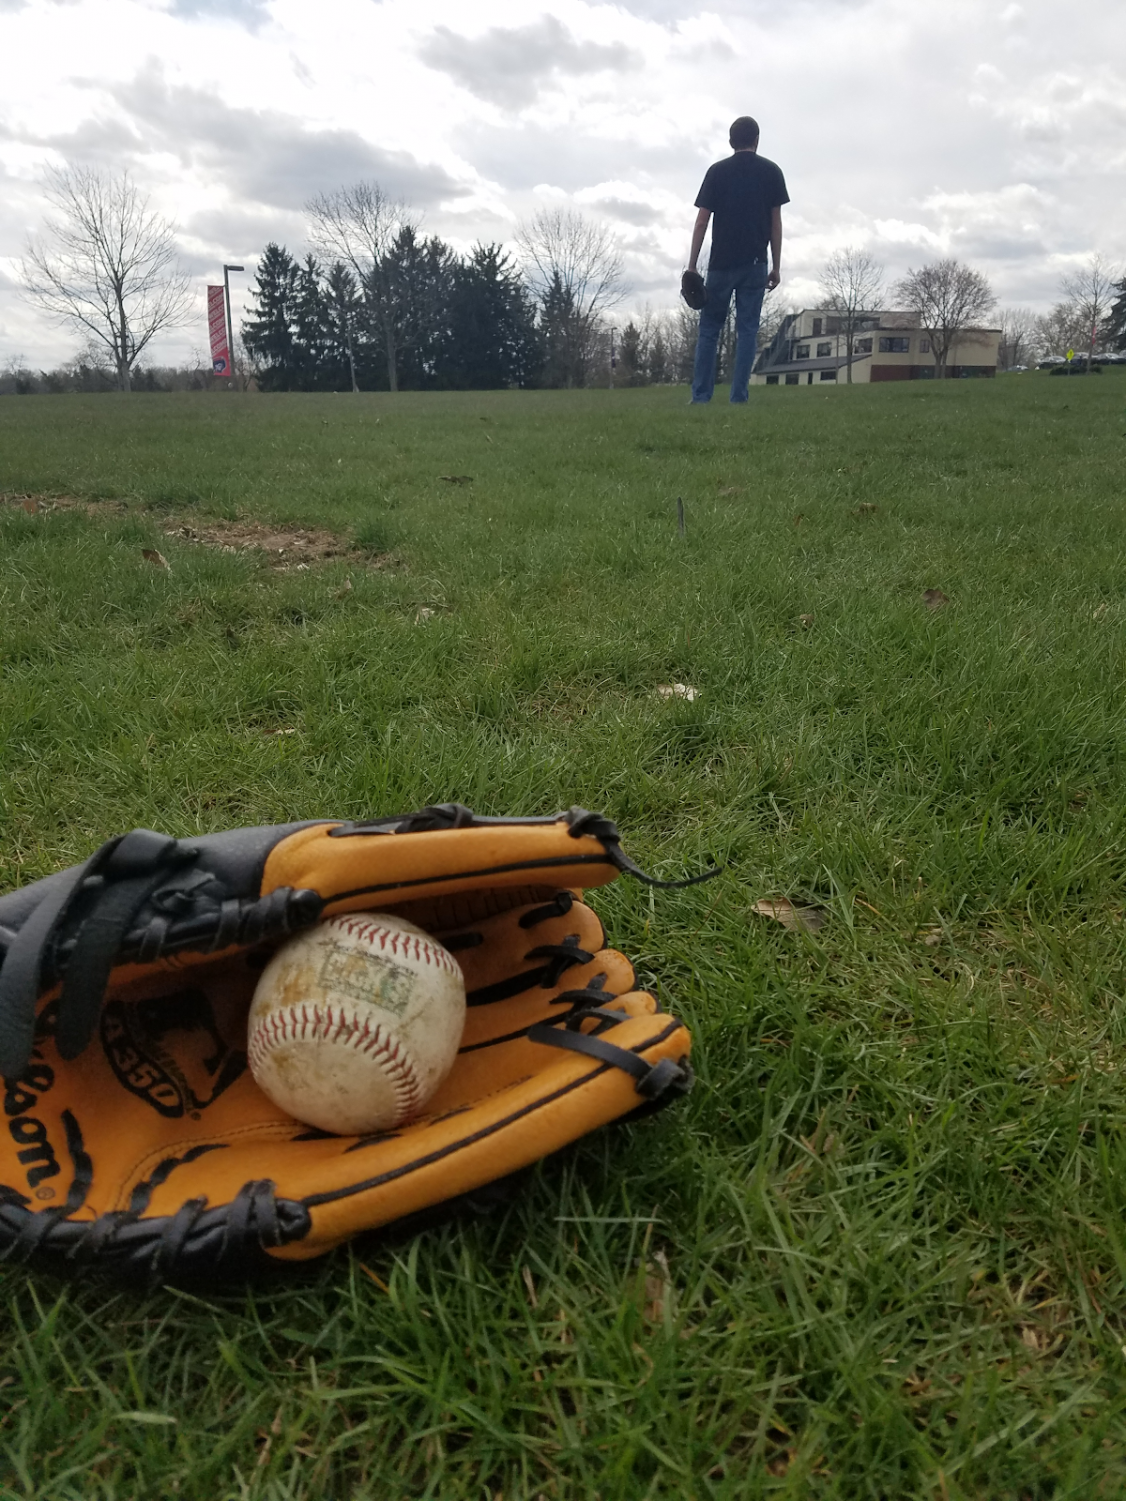 With+the+return+of+Spring%2C+comes+the+return+of+America%27s+pastime.+%28Photo+Credit%3A+Christopher+Gobrish%29